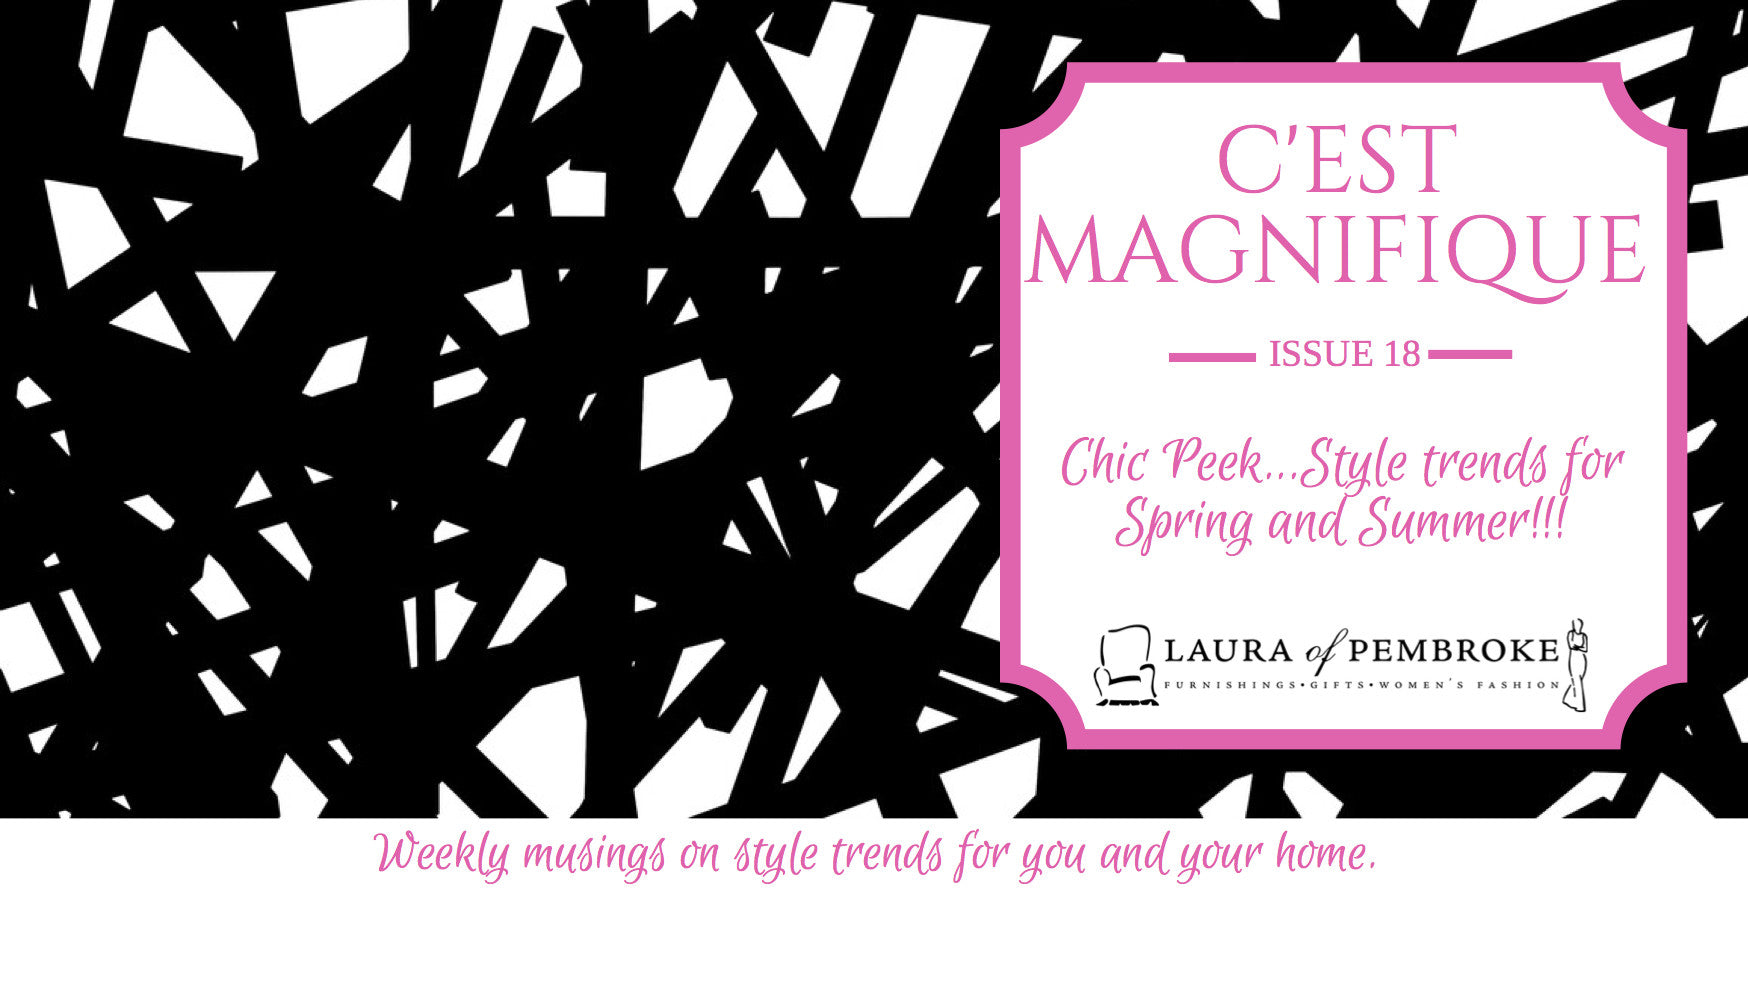 Blog 18: Chic Peek...Style trends for  Spring and Summer!!!